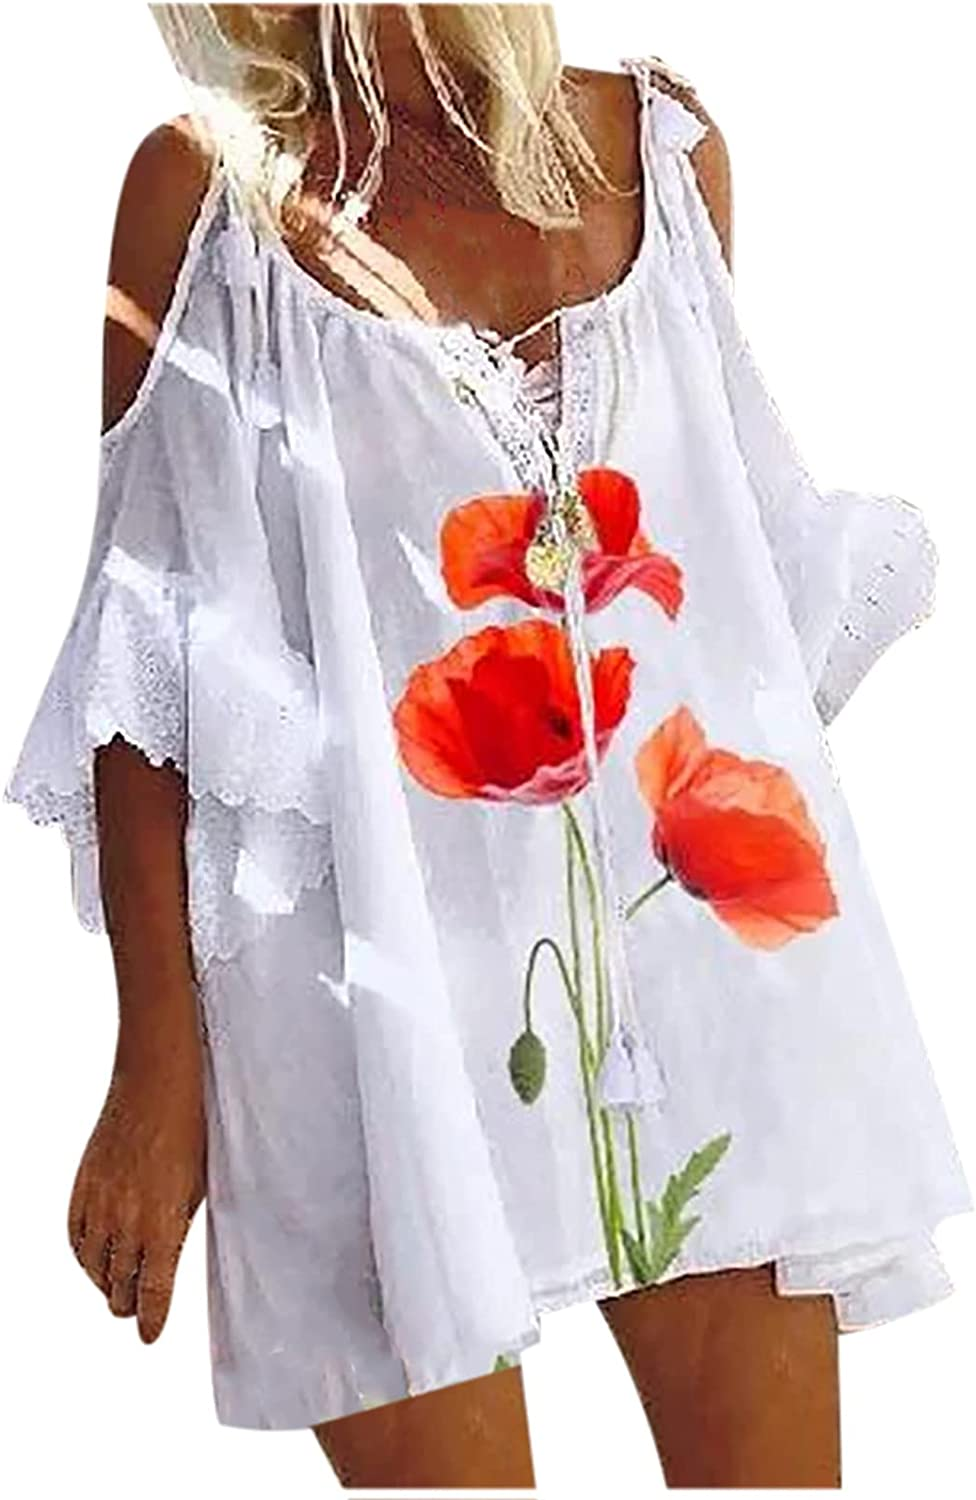 SHOPESSA Women's White Tshirt Dress Crew Neck Floral Loose Fit Ruffle 3/4 Sleeve Dress Baggy Beach Party Casual Mini Dresses